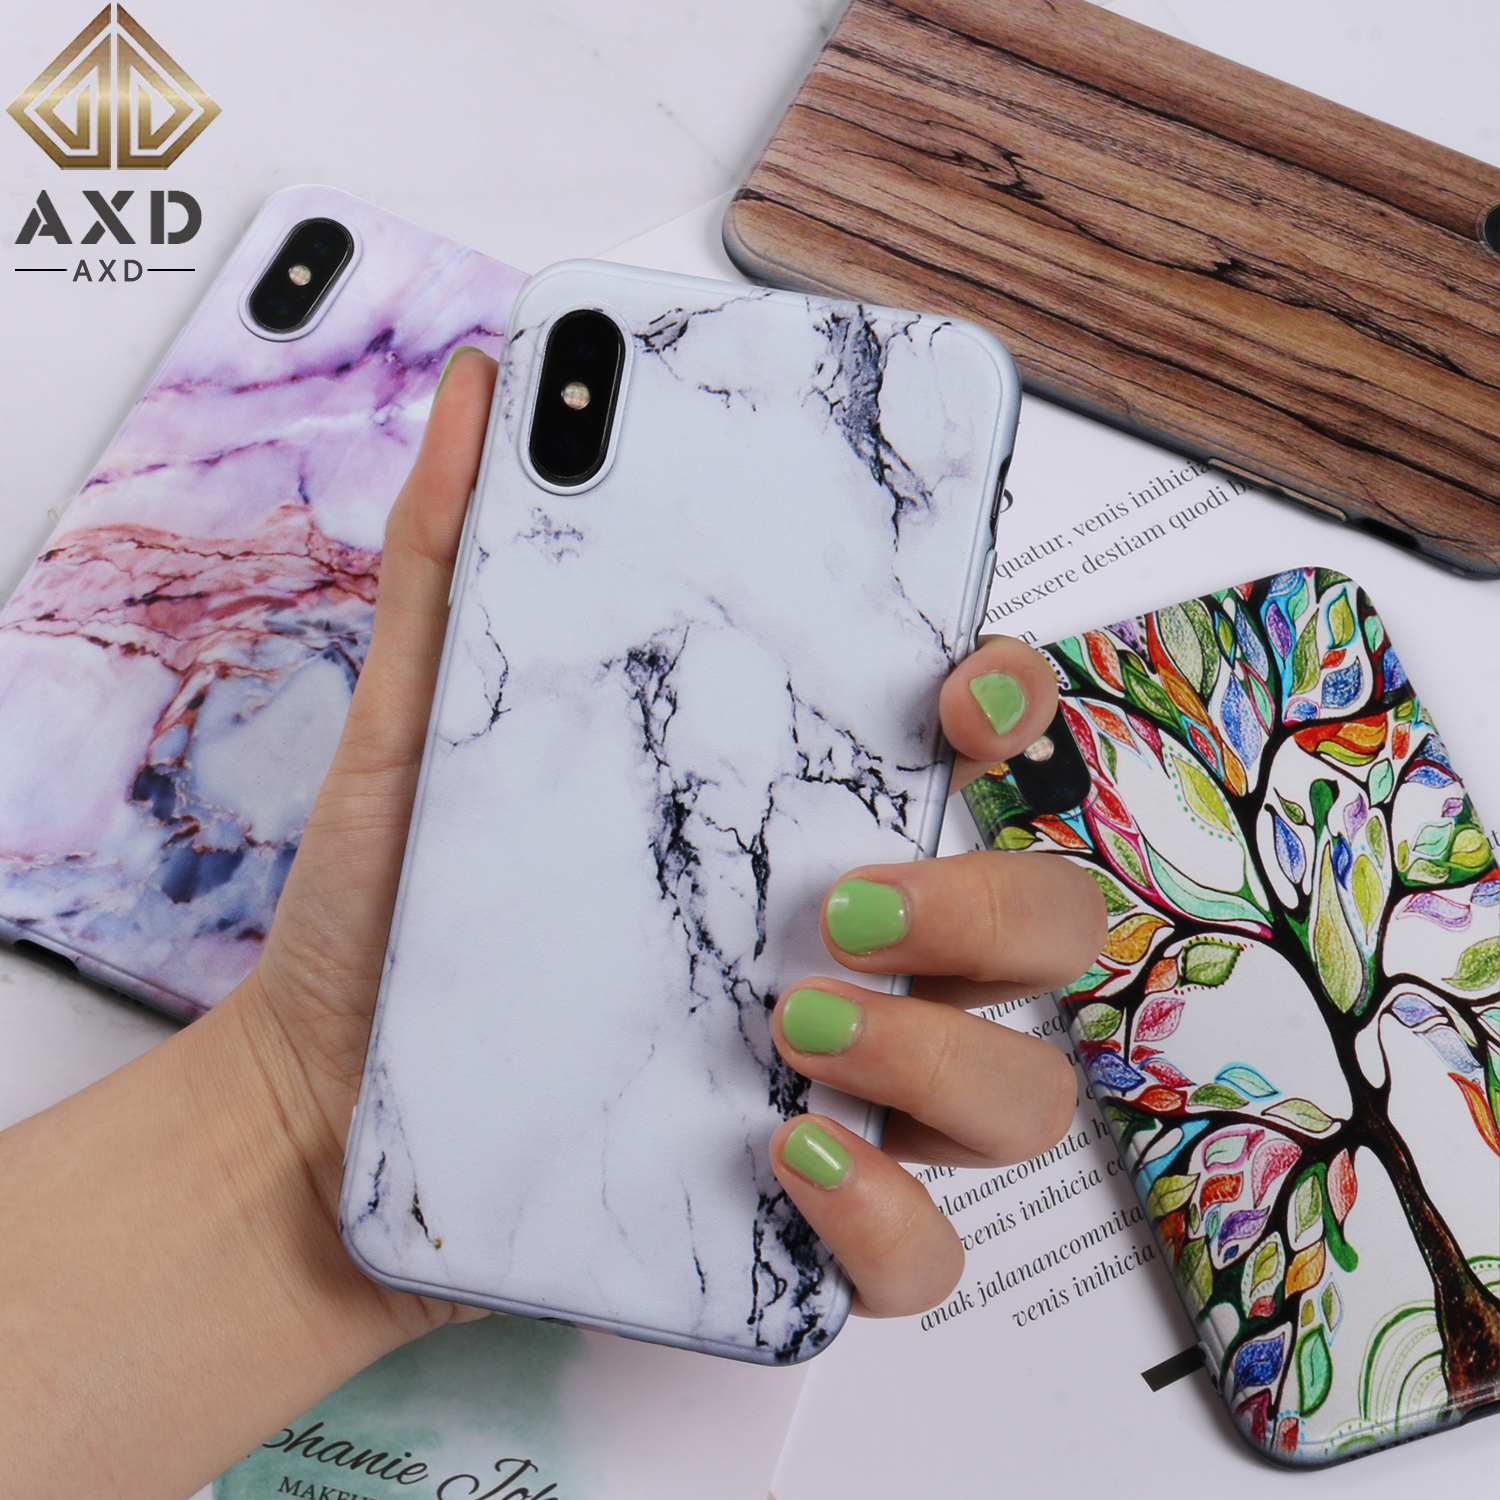 Silicone <font><b>case</b></font> for <font><b>Samsung</b></font> <font><b>Galaxy</b></font> A40 <font><b>A50</b></font> A70 protection soft shell painting cover fundas capa coque for A405 A505 A705 F/DS/U/N image